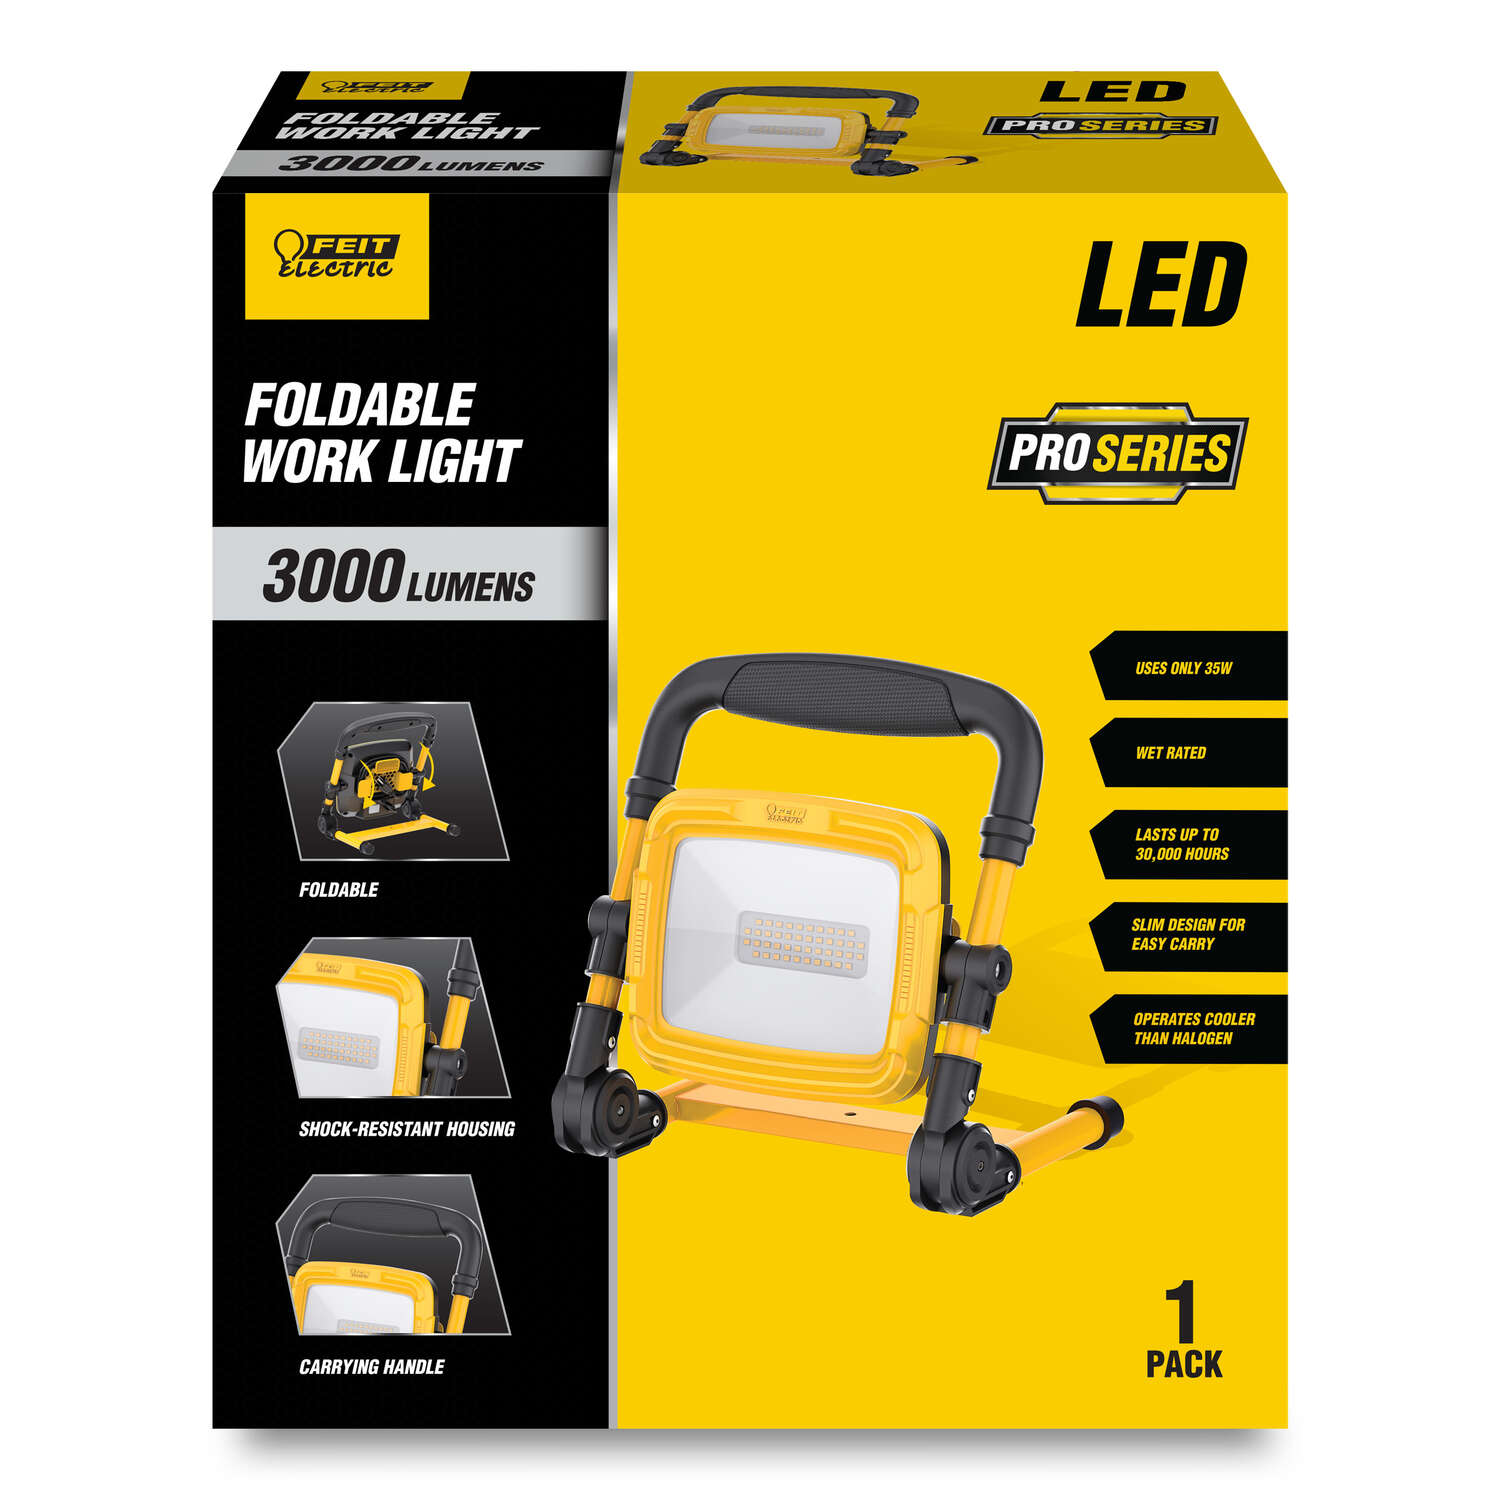 Feit Electric  Pro Series  3000 lumens LED  Corded  Stand (H or Scissor)  Work Light